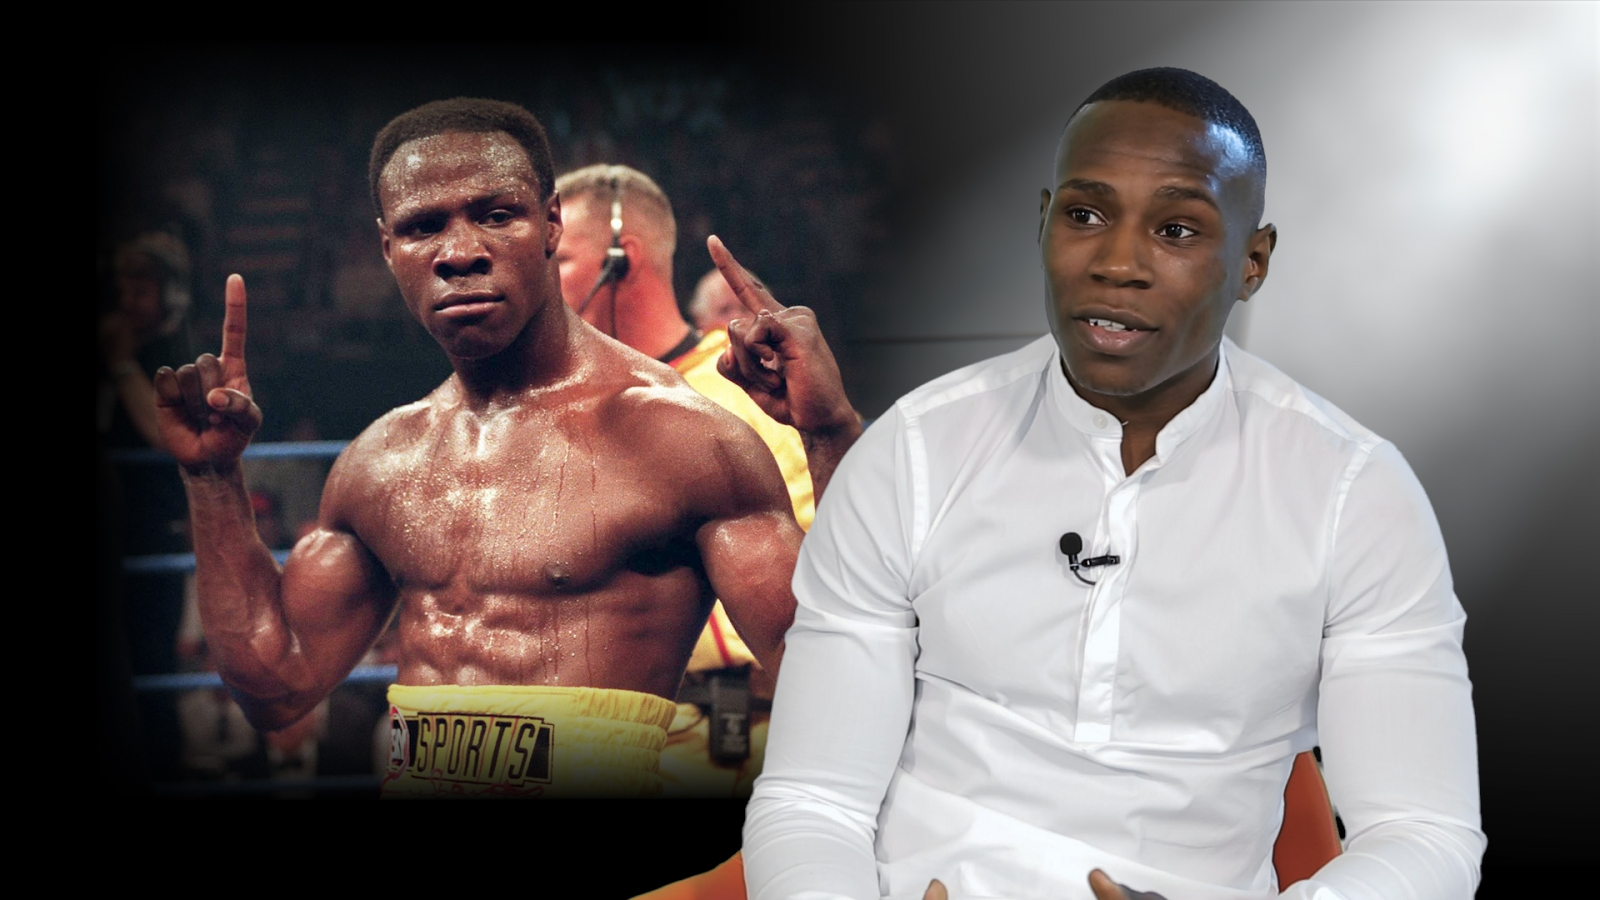 Nathanael Wilson interview: Chris Eubank's son buries hatchet to play his dad in Michael Watson biopic